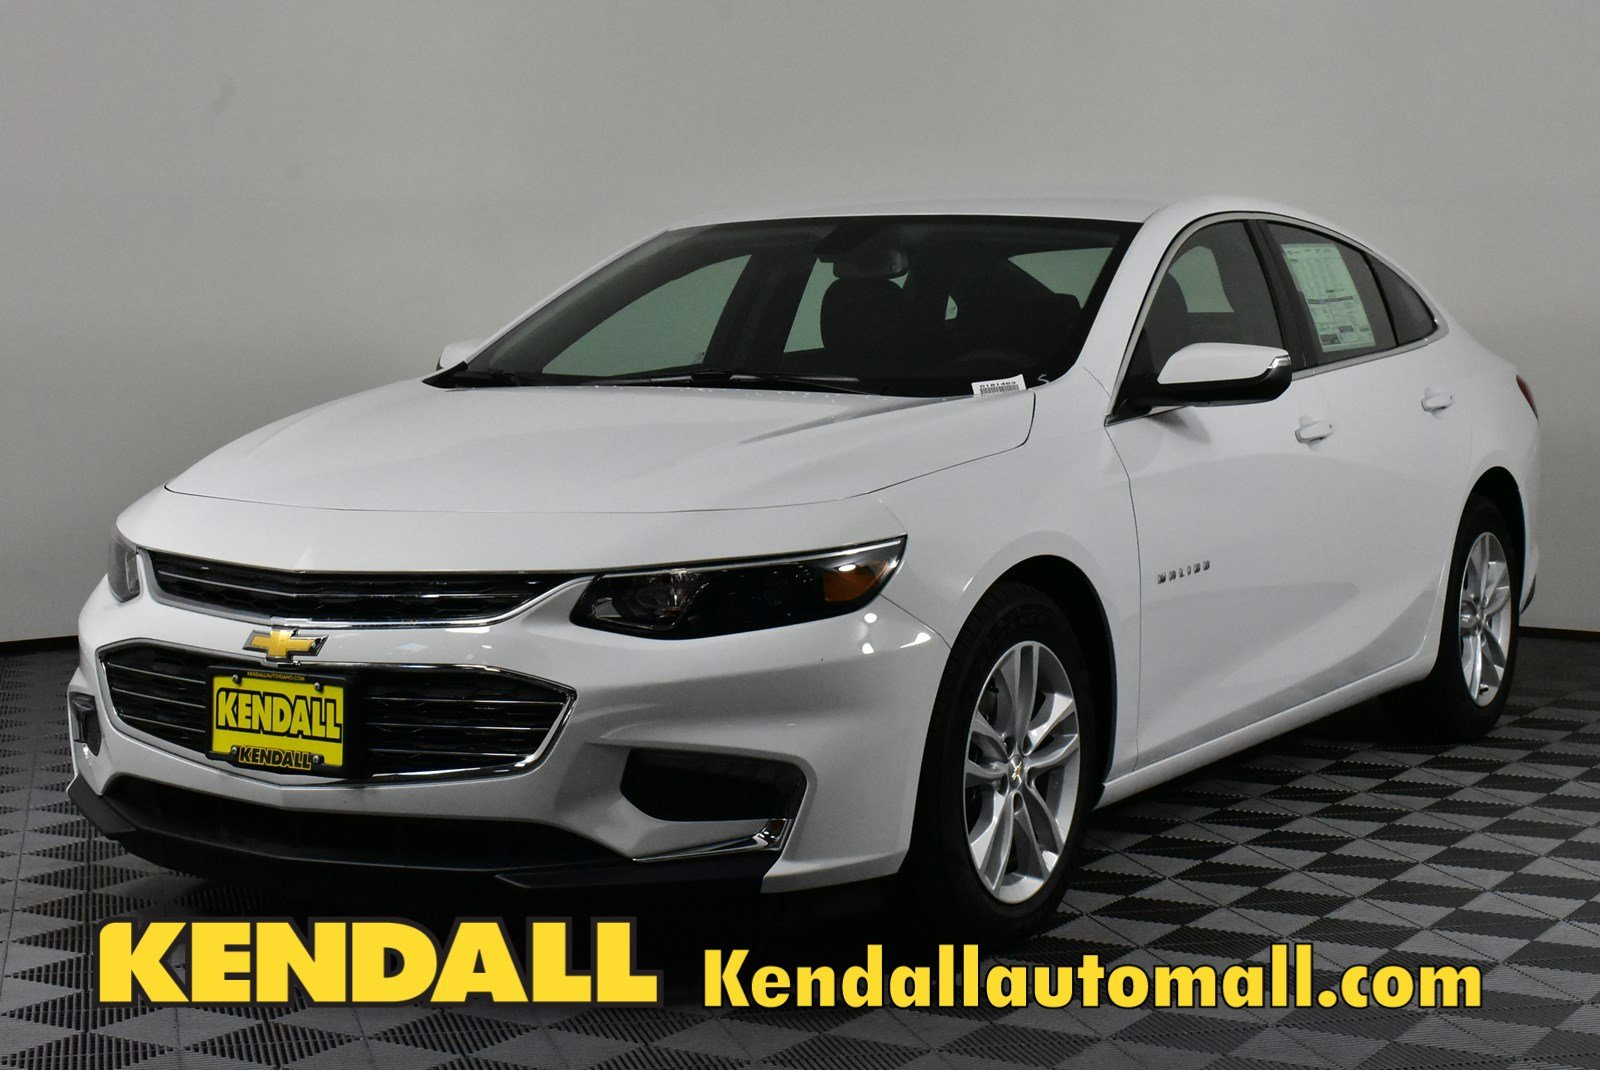 New 2018 Chevrolet Malibu Lt In Nampa D181463 Kendall At The